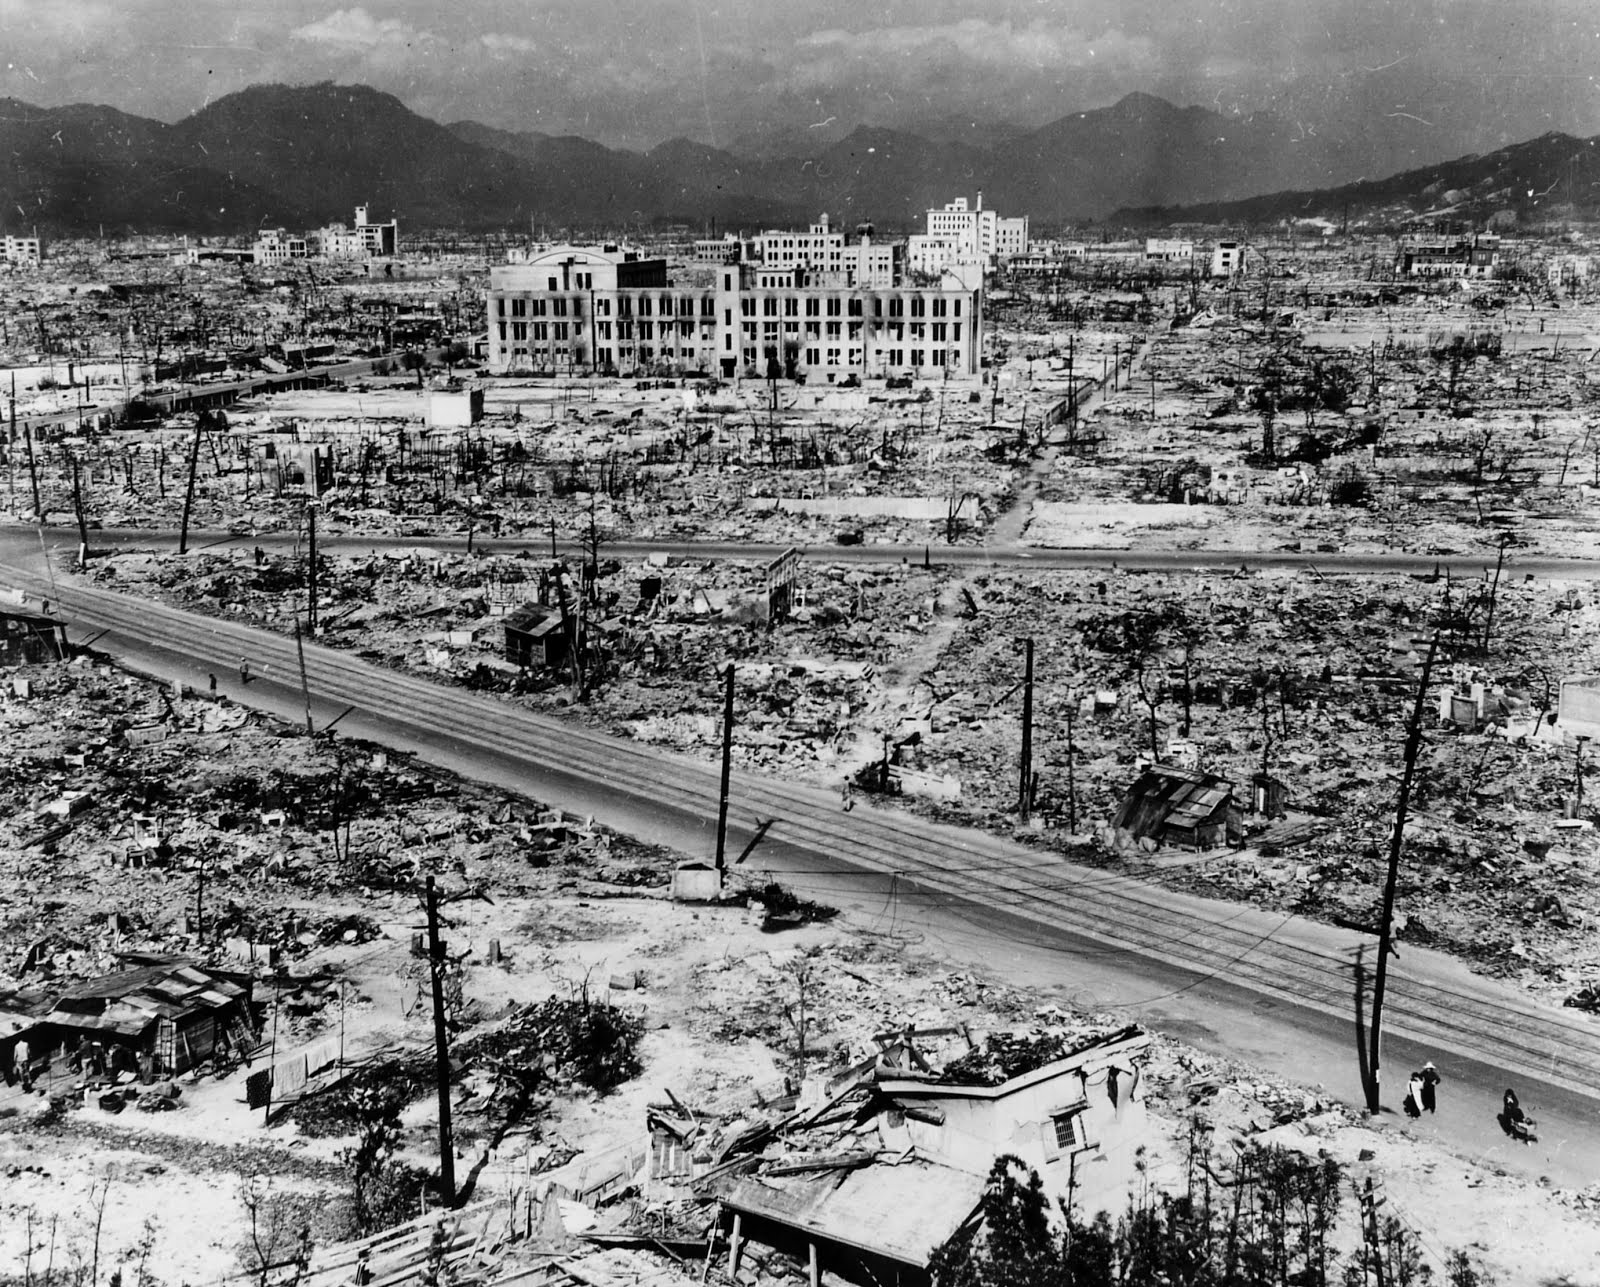 the atomic bombing of hiroshima essay - the bombing of hiroshima on august 6, 1945, a b-29 bomber named enola gay dropped an atomic bomb, little boy on hiroshima, japan hiroshima had been almost eradicated with an estimated 70-80,000 people killed.